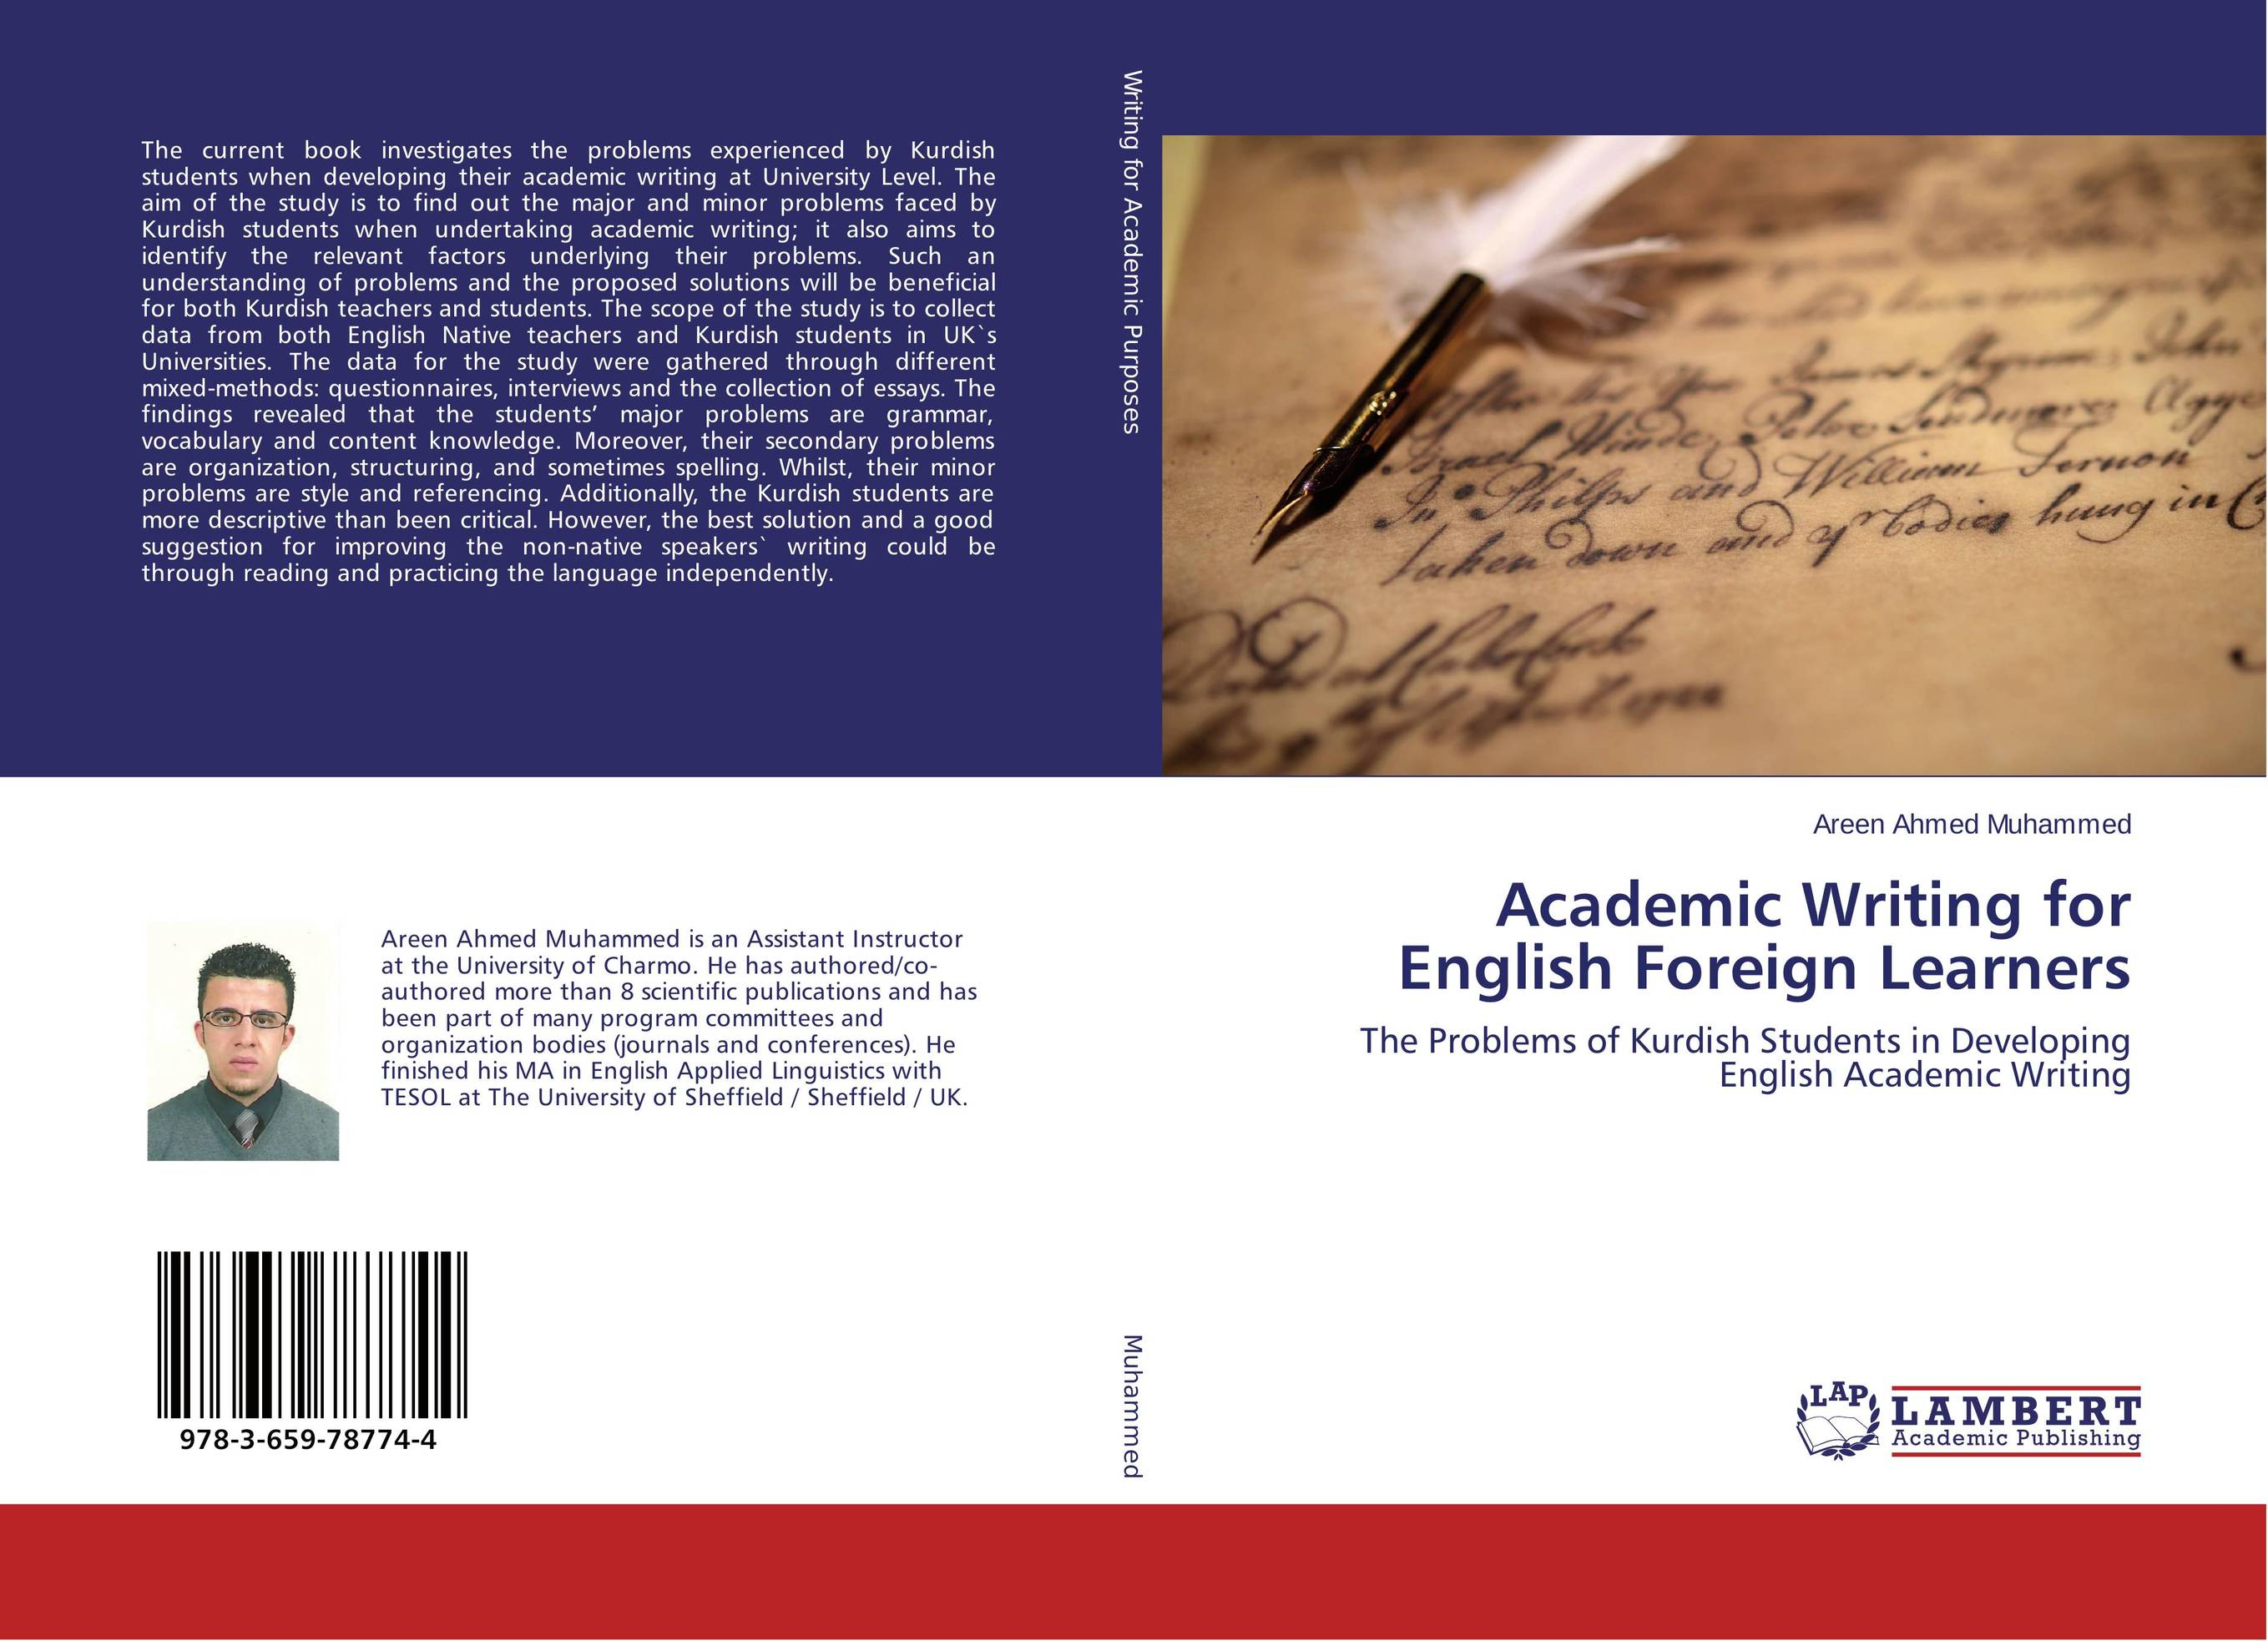 Academic Writing for English Foreign Learners emigration of fathers and academic performance of their children